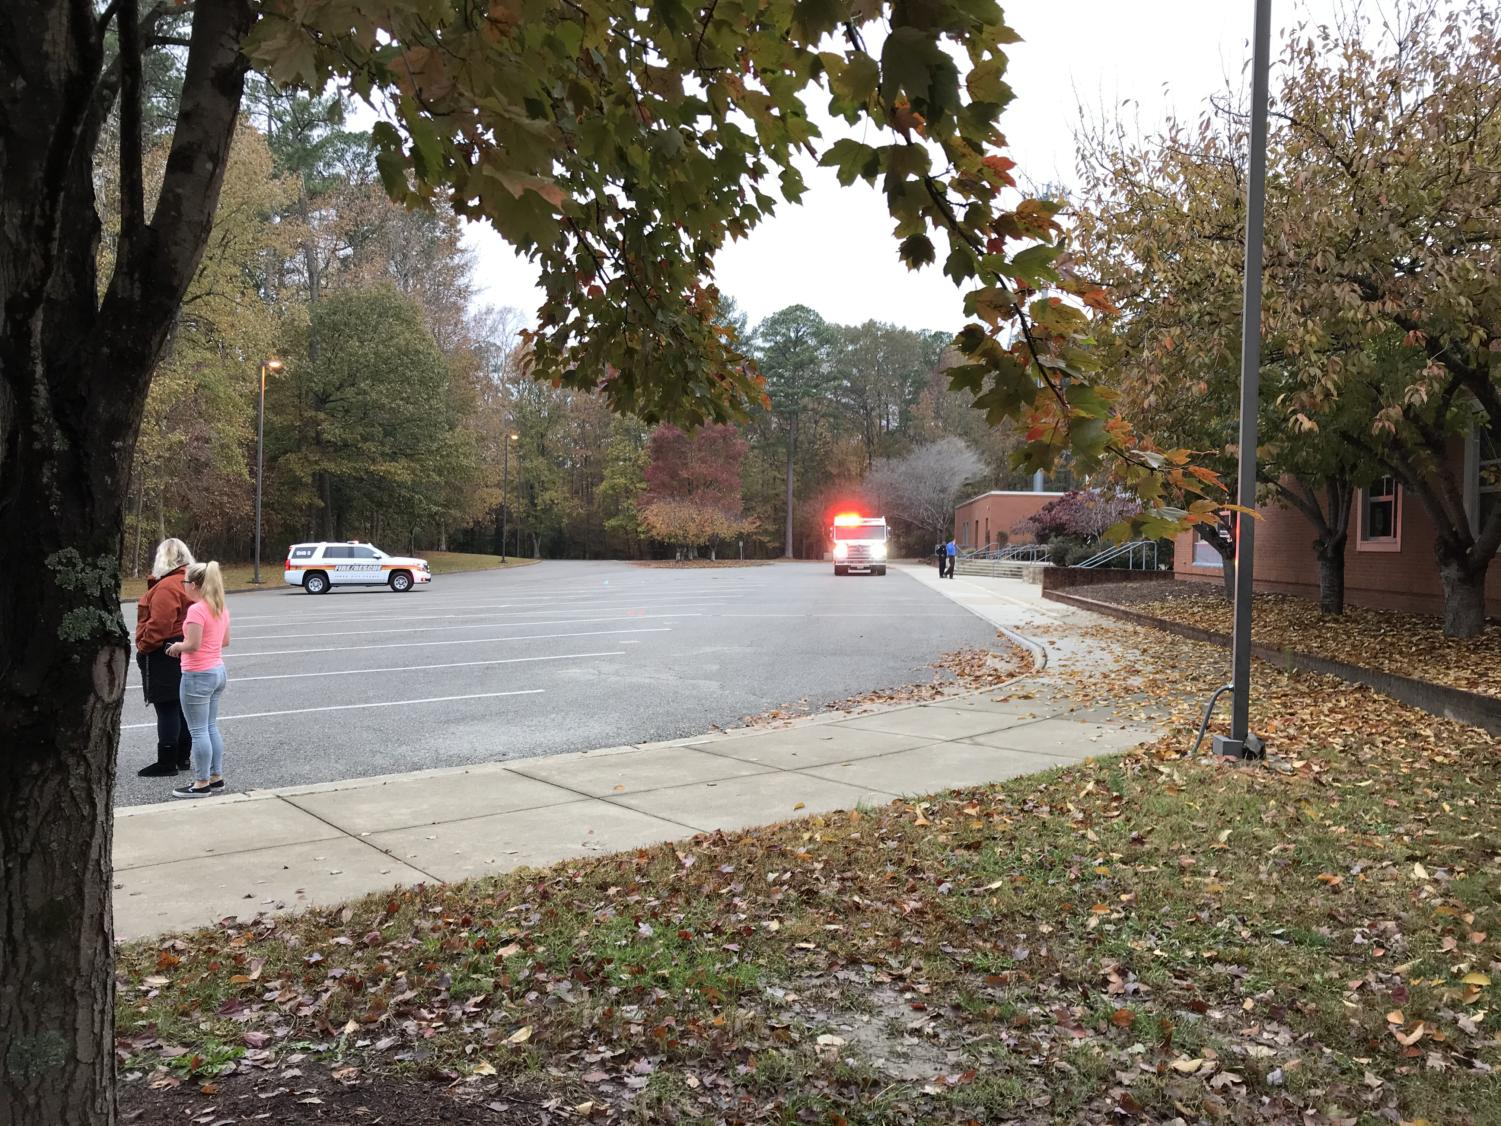 Emergency vehicles arrived on the scene quickly, taking over the bus loop and forcing students and faculty to move to the track while the kiln and art room were investigated by officials.